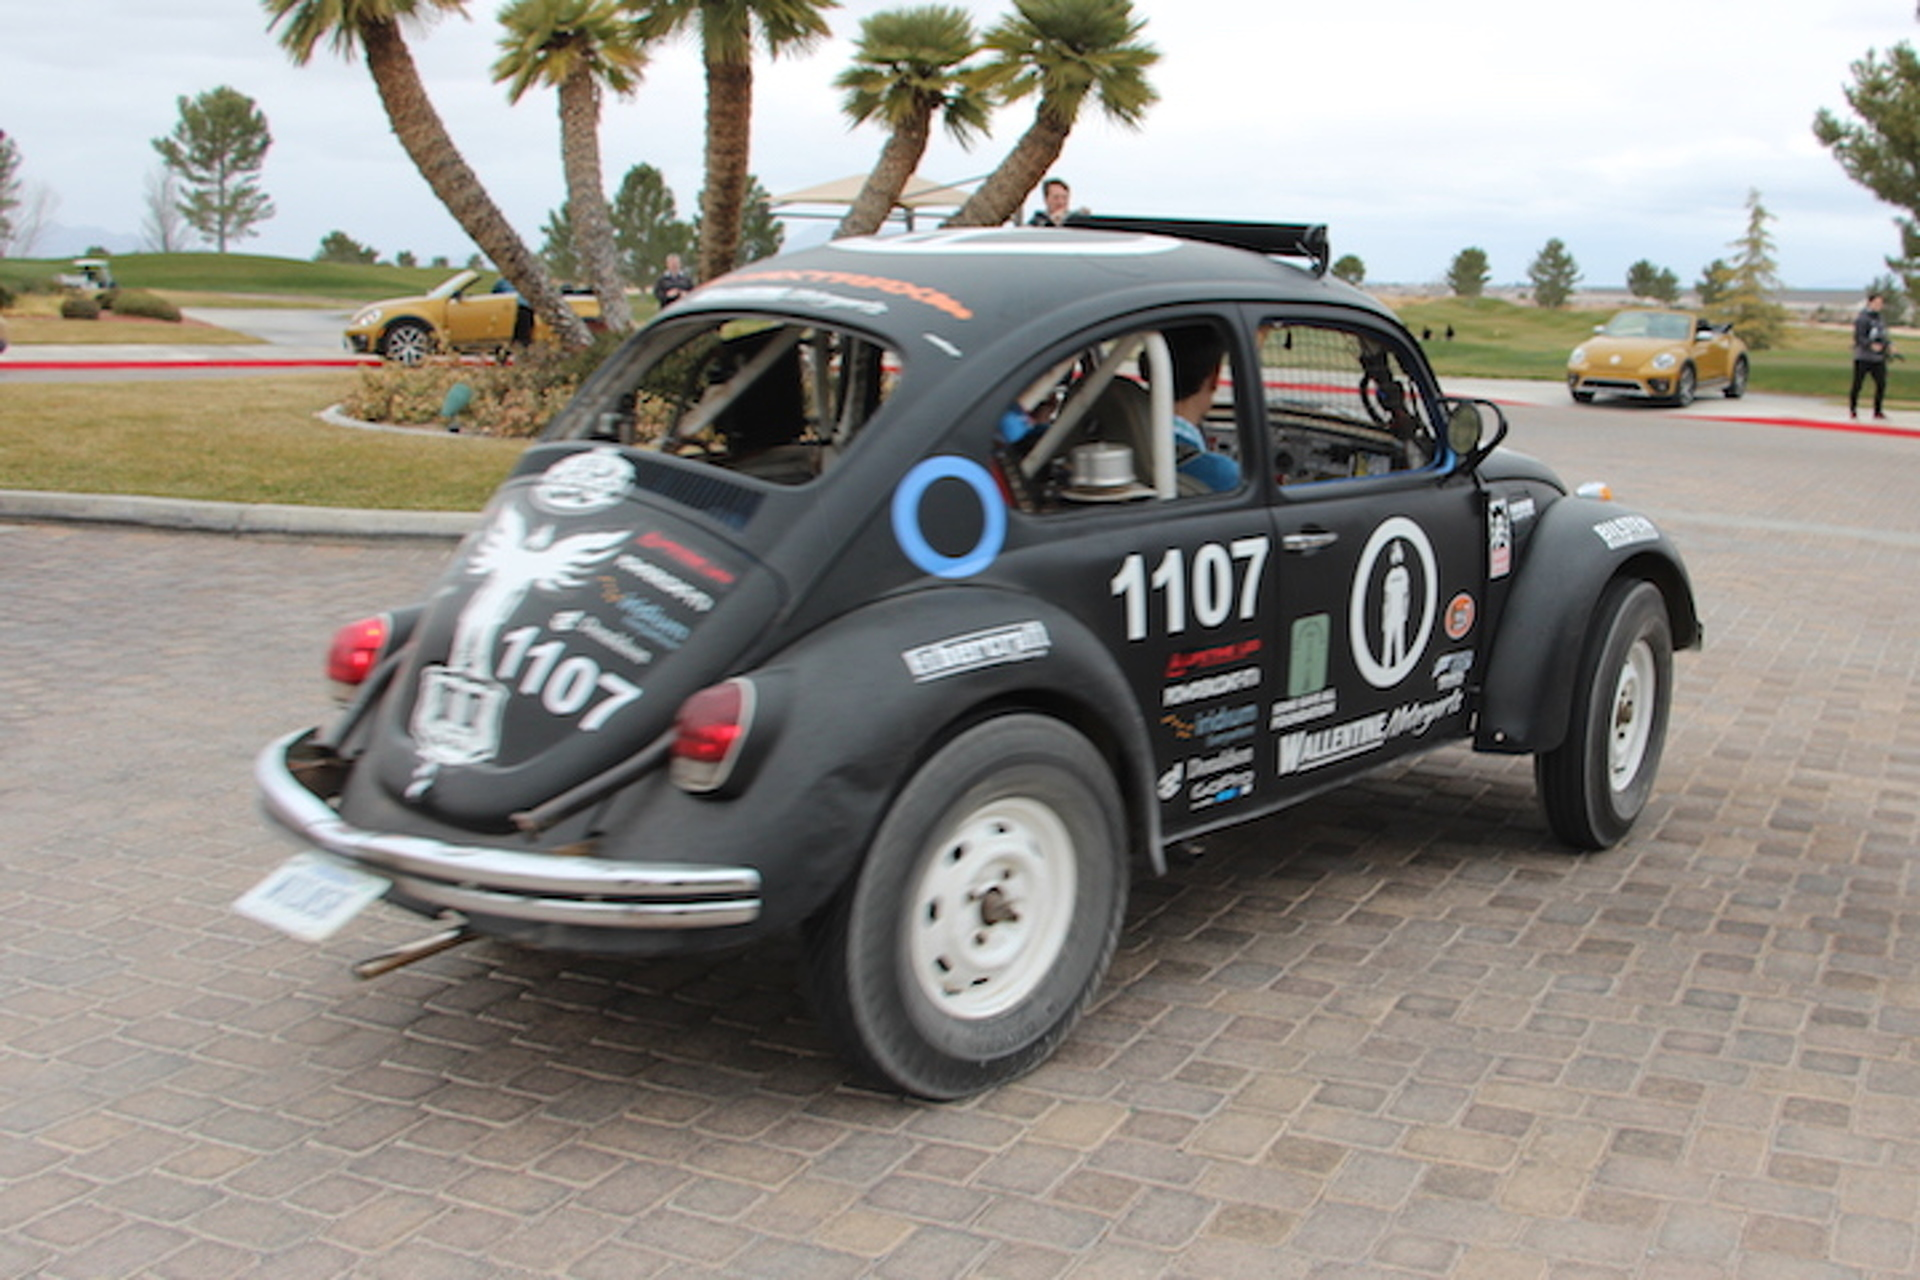 Driving a Classic Baja Bug is a Scary, Heavenly Experience Everyone Needs to Try Once